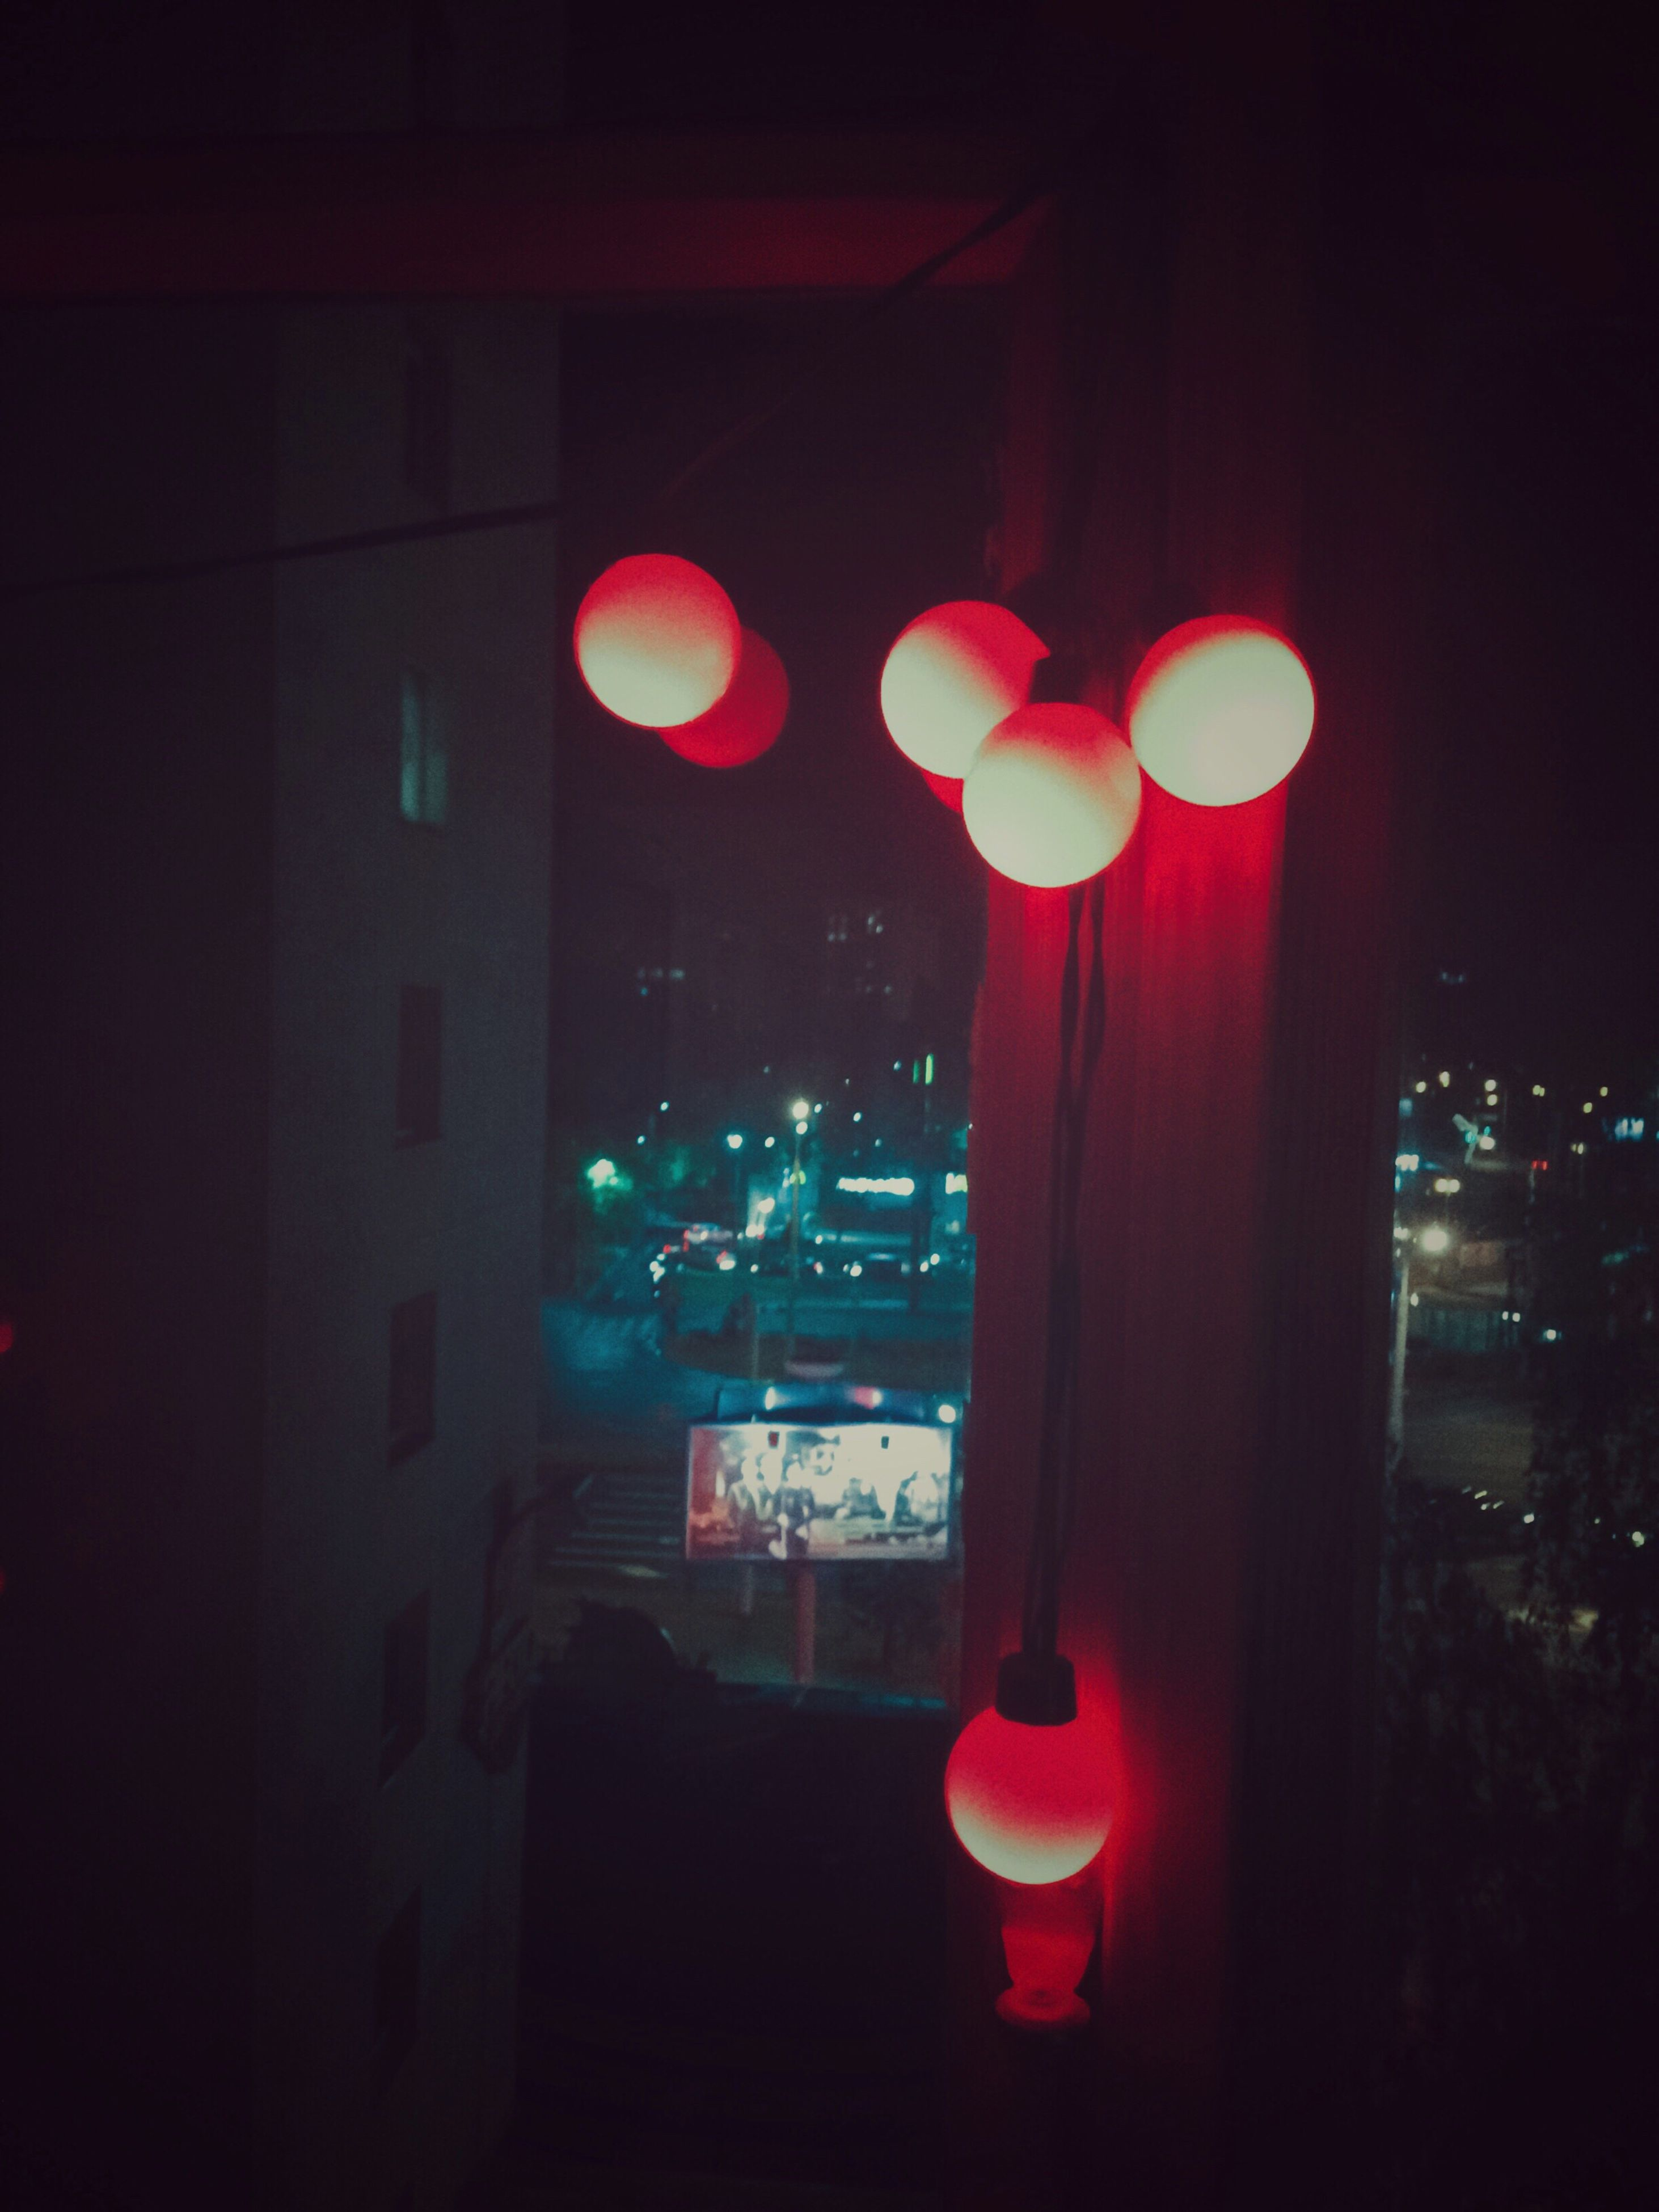 illuminated, night, red, no people, architecture, outdoors